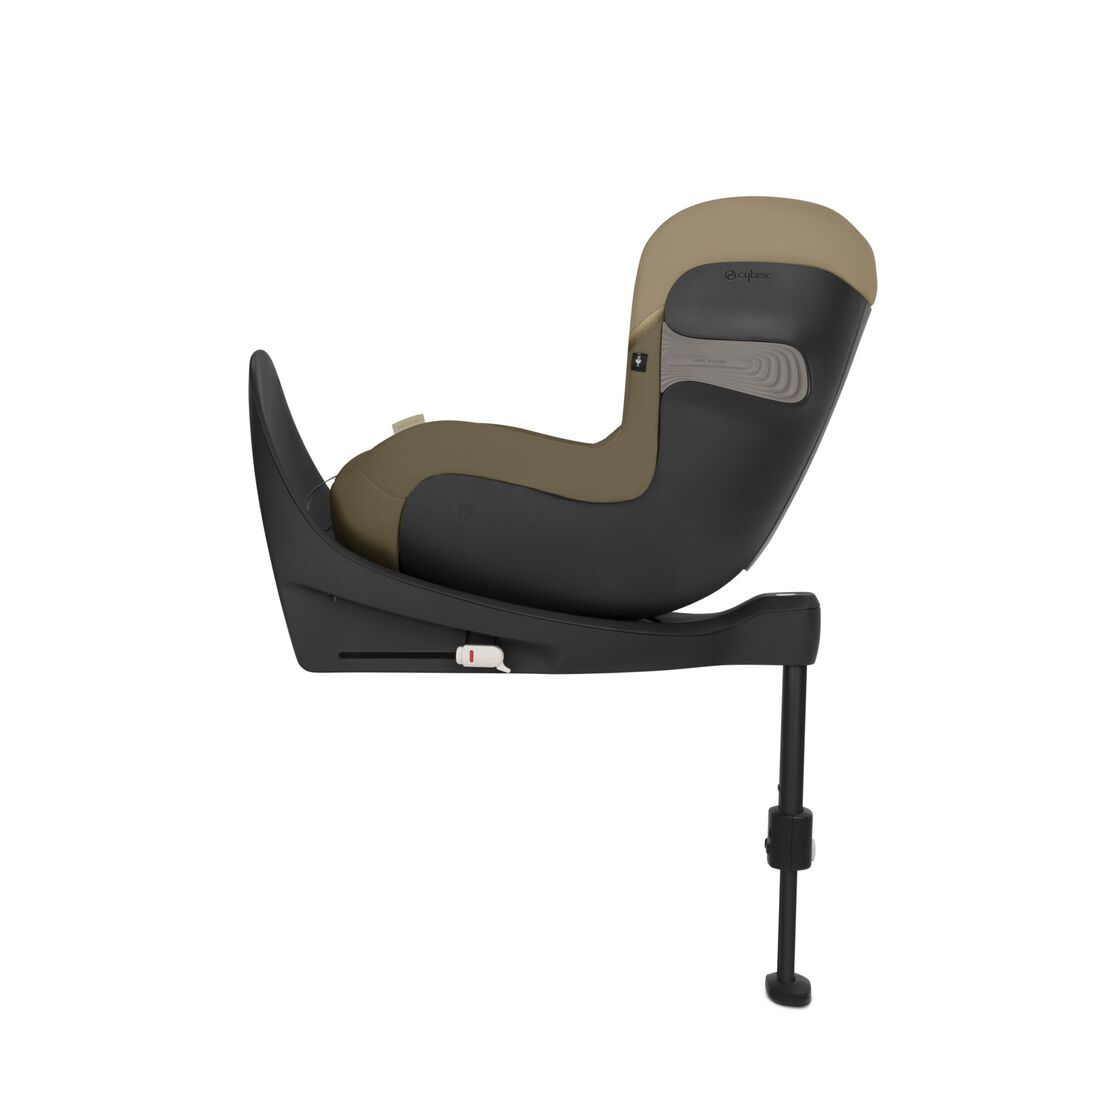 CYBEX Sirona S2 i-Size - Classic Beige in Classic Beige large image number 2